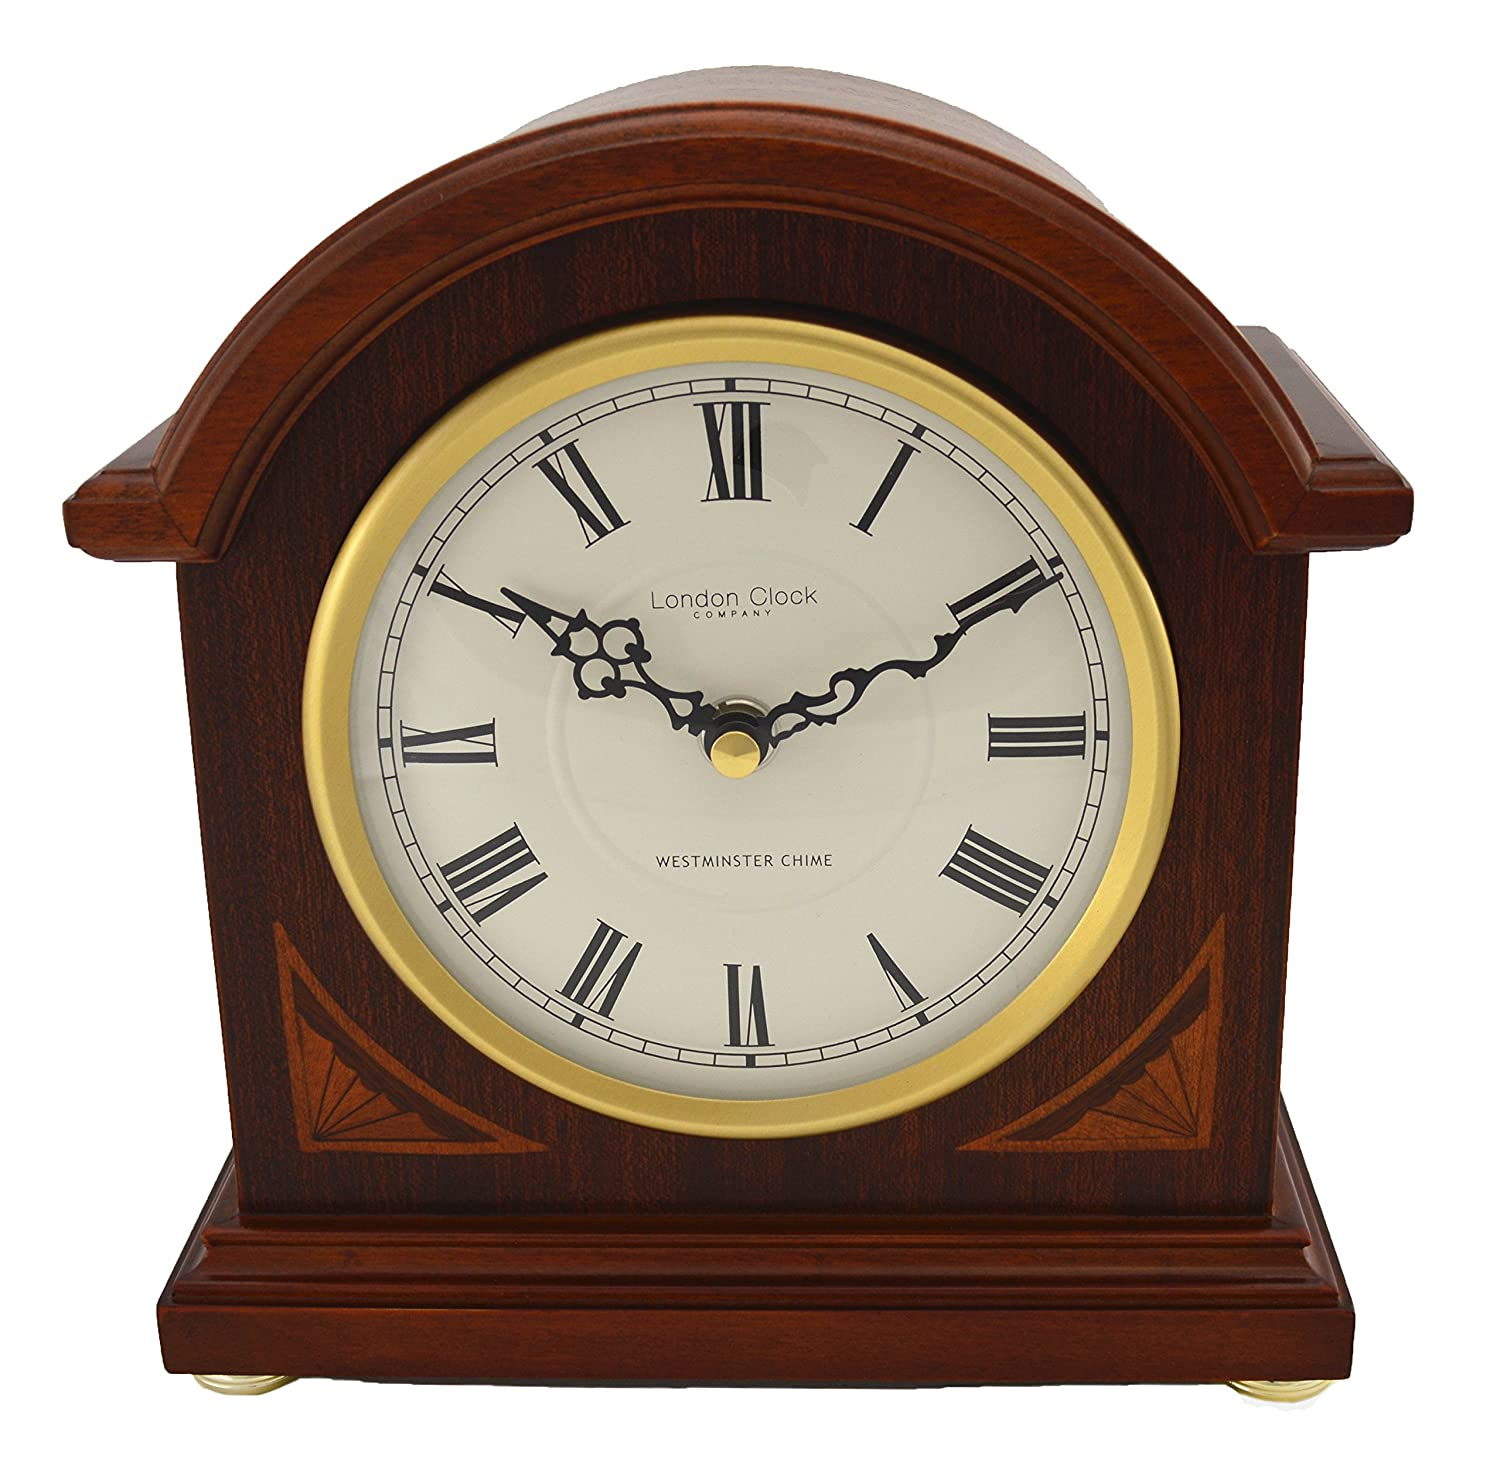 London Clock - 07029 - Break Arch Mahogany Wood Finish Mantel Clock Carters of London